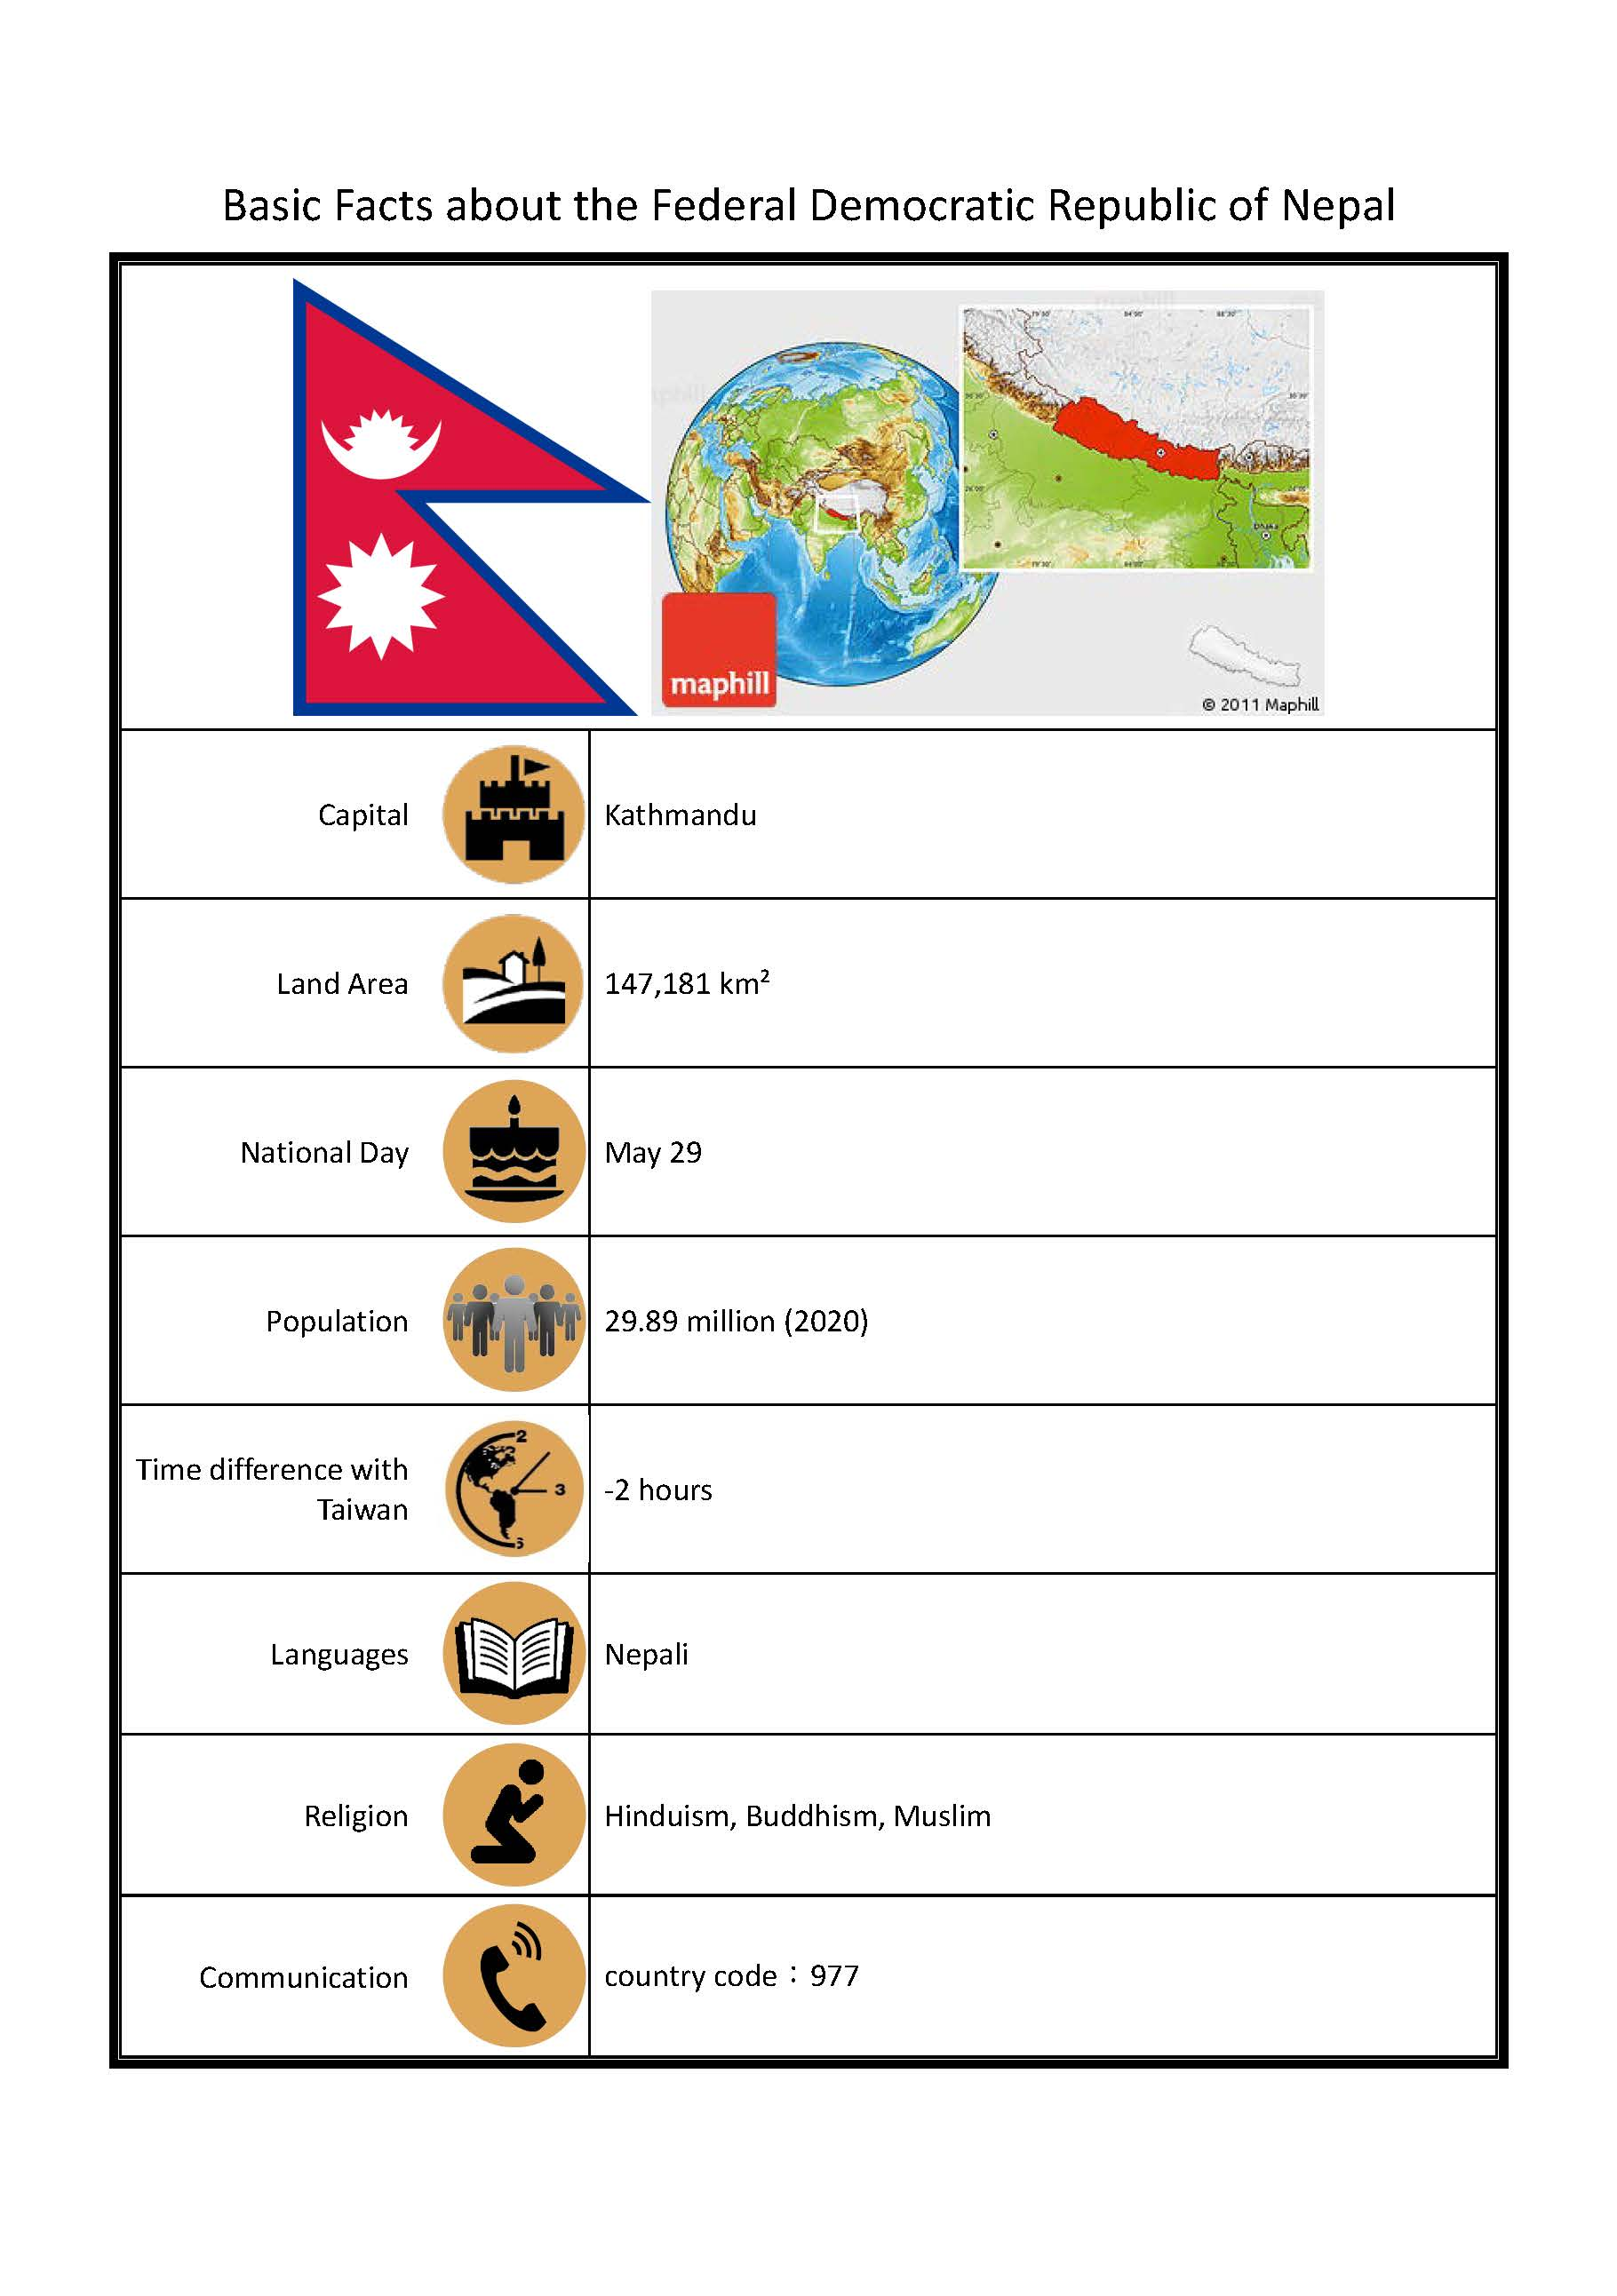 The Federal Democratic Republic of Nepal